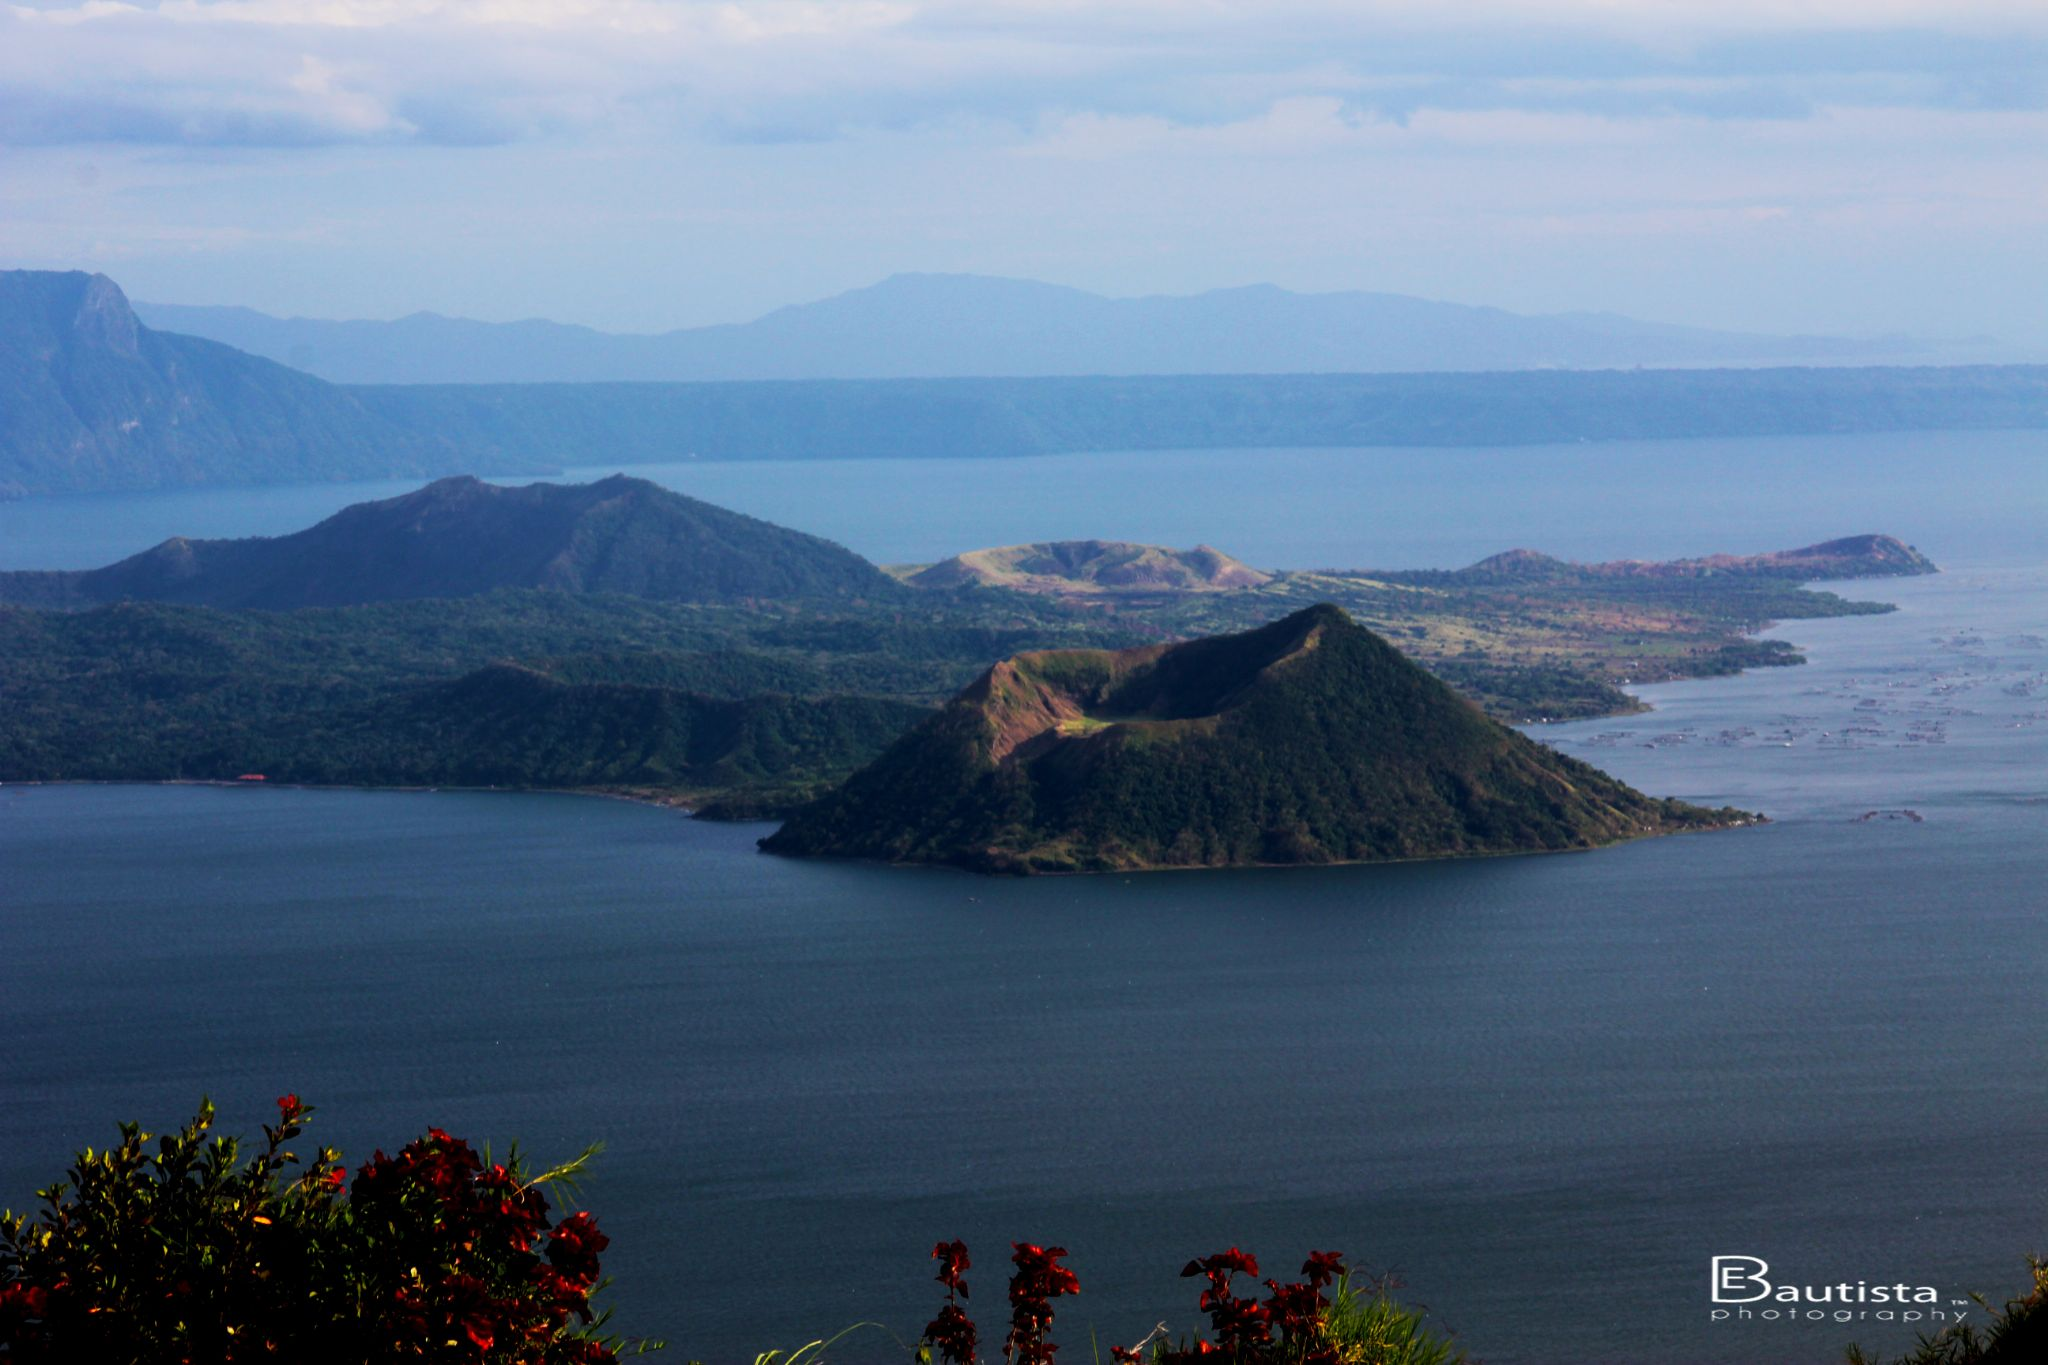 """Taal"" volcano by EBautistaPhotography"